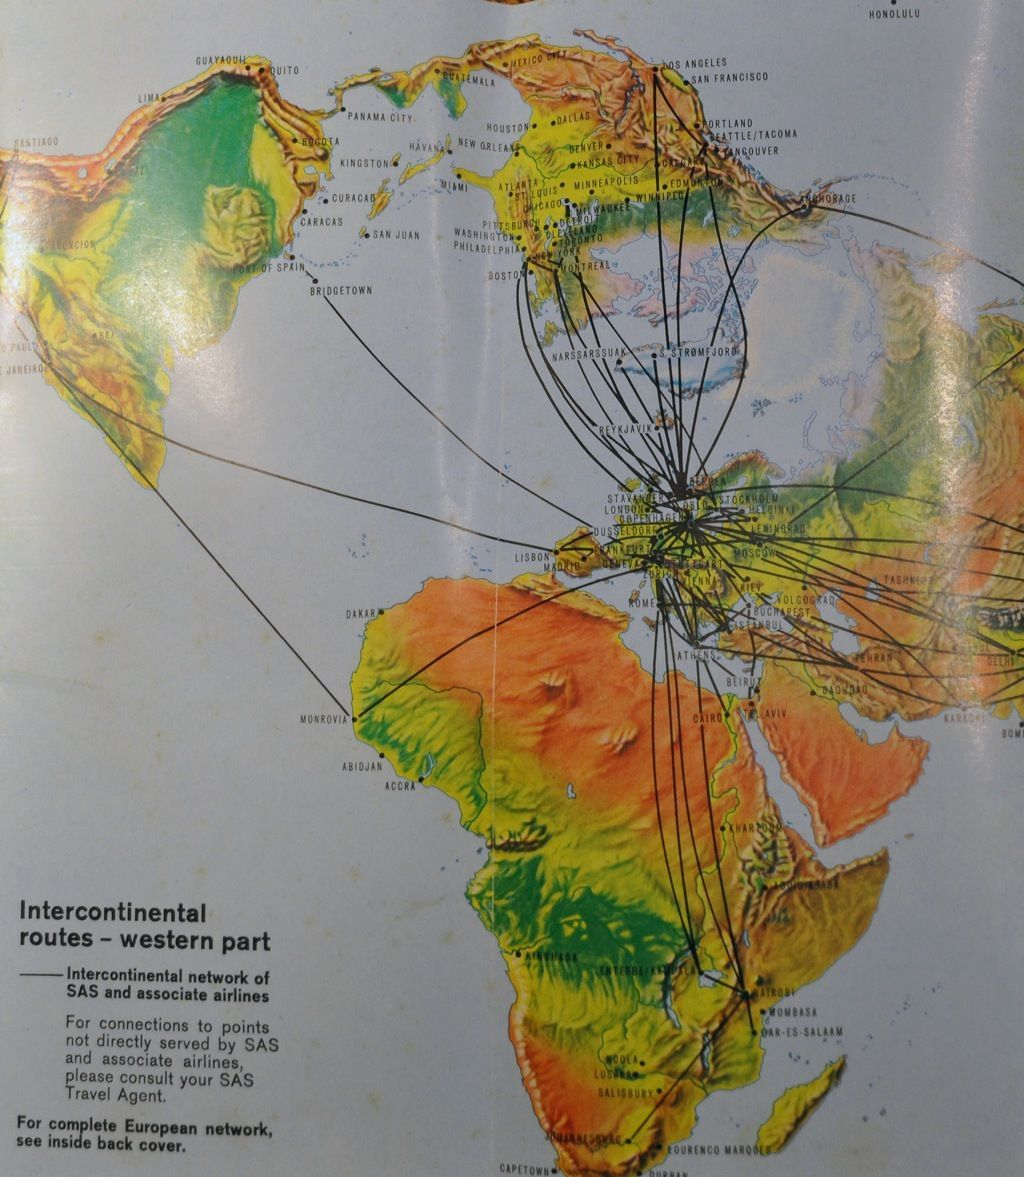 1973 route map for scandinavian airlines sas using flat earth map 1973 route map for scandinavian airlines sas using flat earth map gumiabroncs Gallery